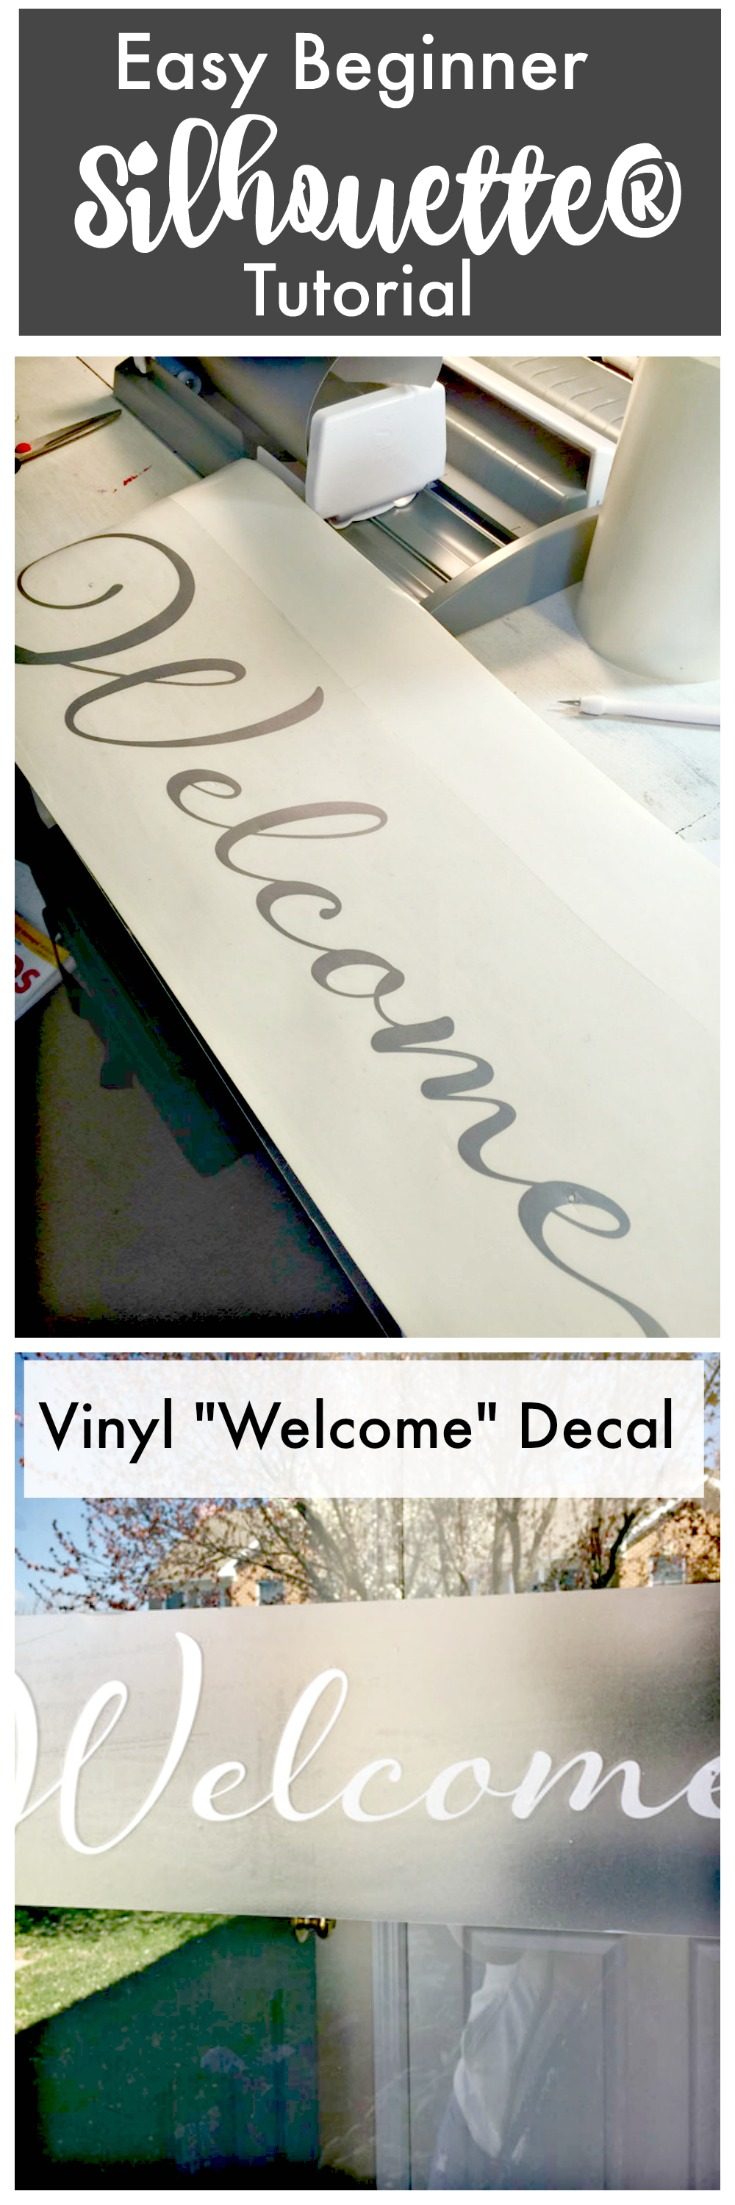 Easy Beginner Silhouette Tutorial - Vinyl Welcome Decal